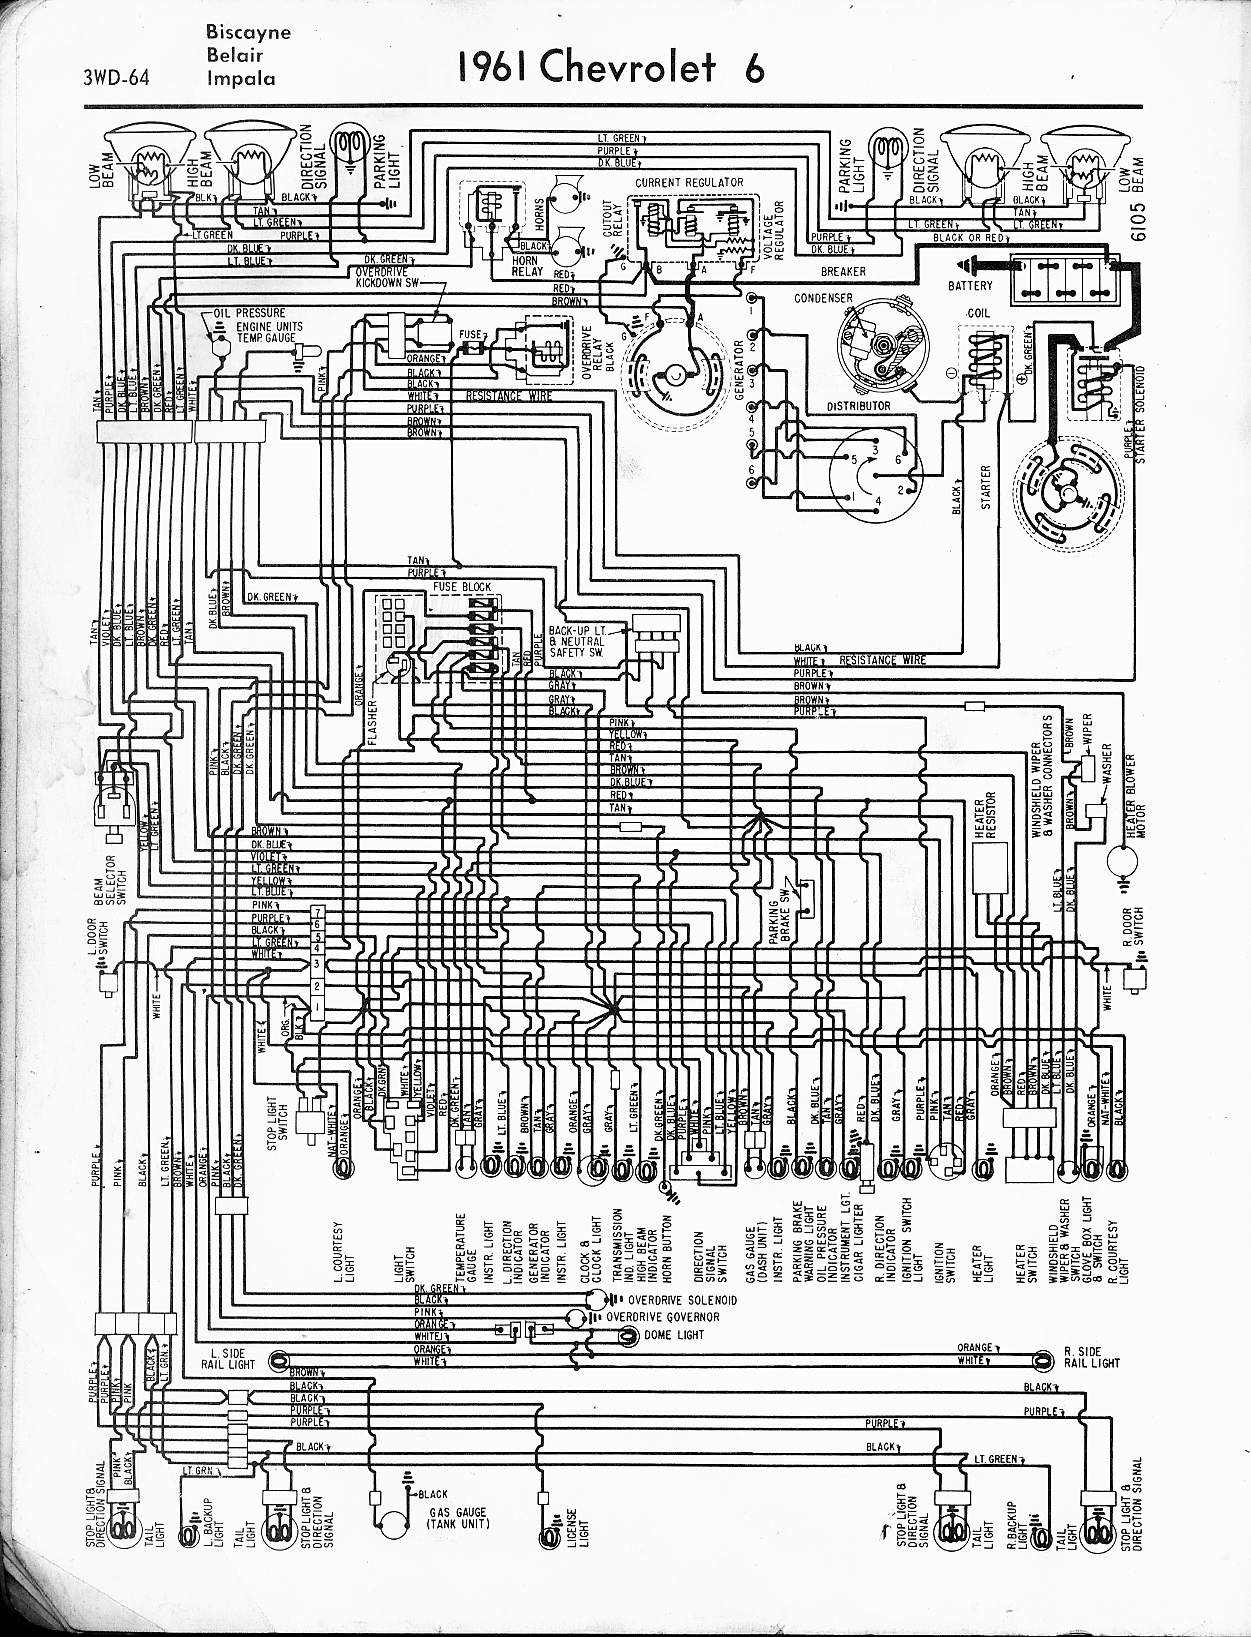 Wiring diagram for 1961 chevy impala library wiring diagram 2004 impala wiring diagram 57 65 chevy wiring diagrams 2001 impala wiring diagram 1961 6 cyl biscayne, belair,